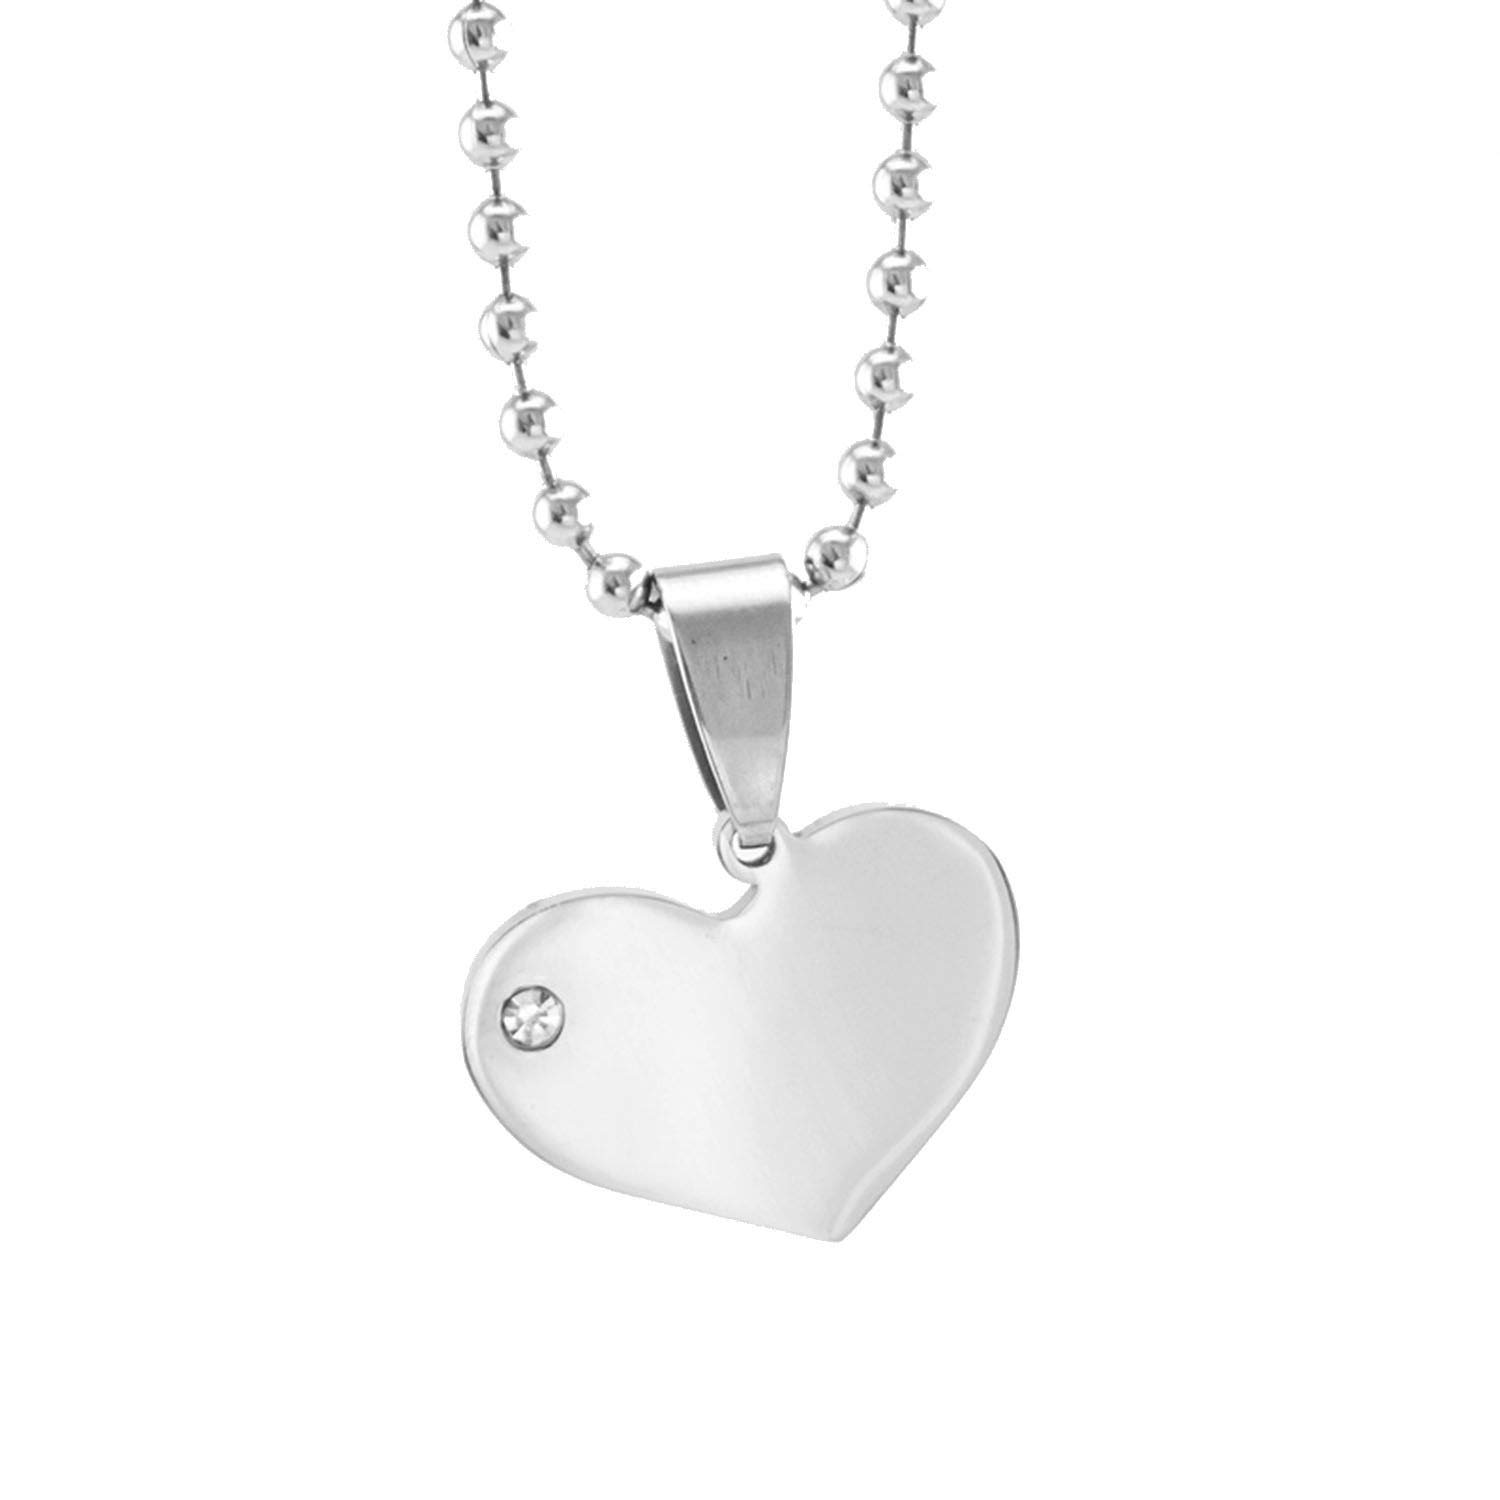 Heart Charms Rhinestone in Heart Pendants Blank Pendant for Engrave Print Mirror Polish Stainless Steel 100 Pcs,A1